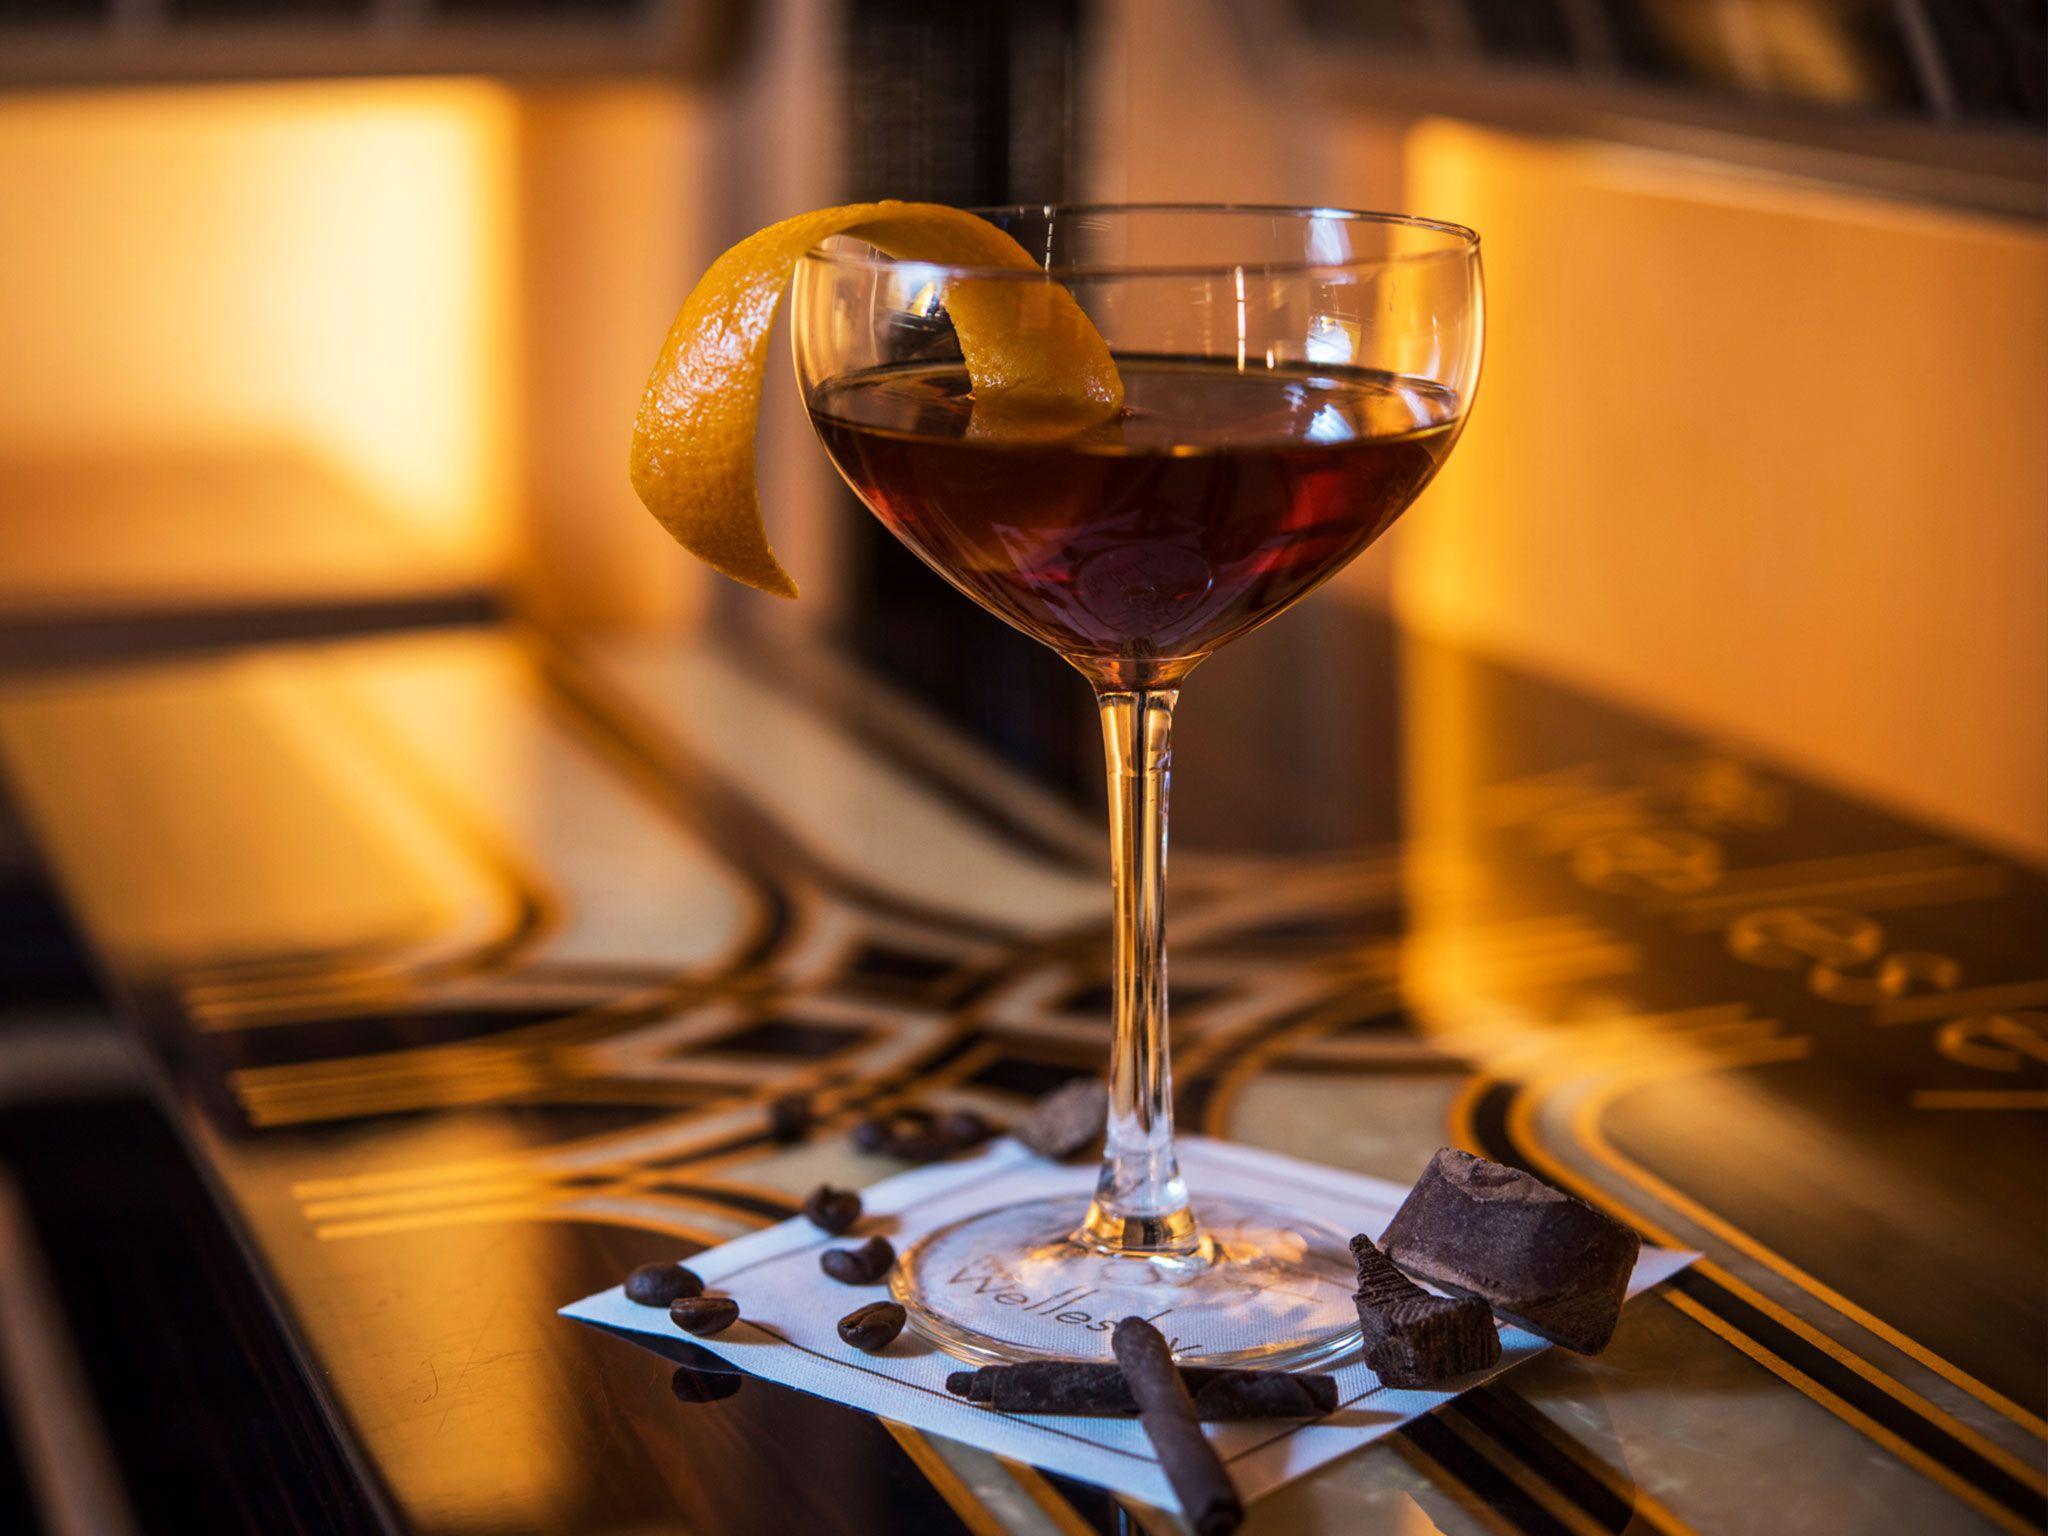 Smoky Manhattan at Crystal Bar